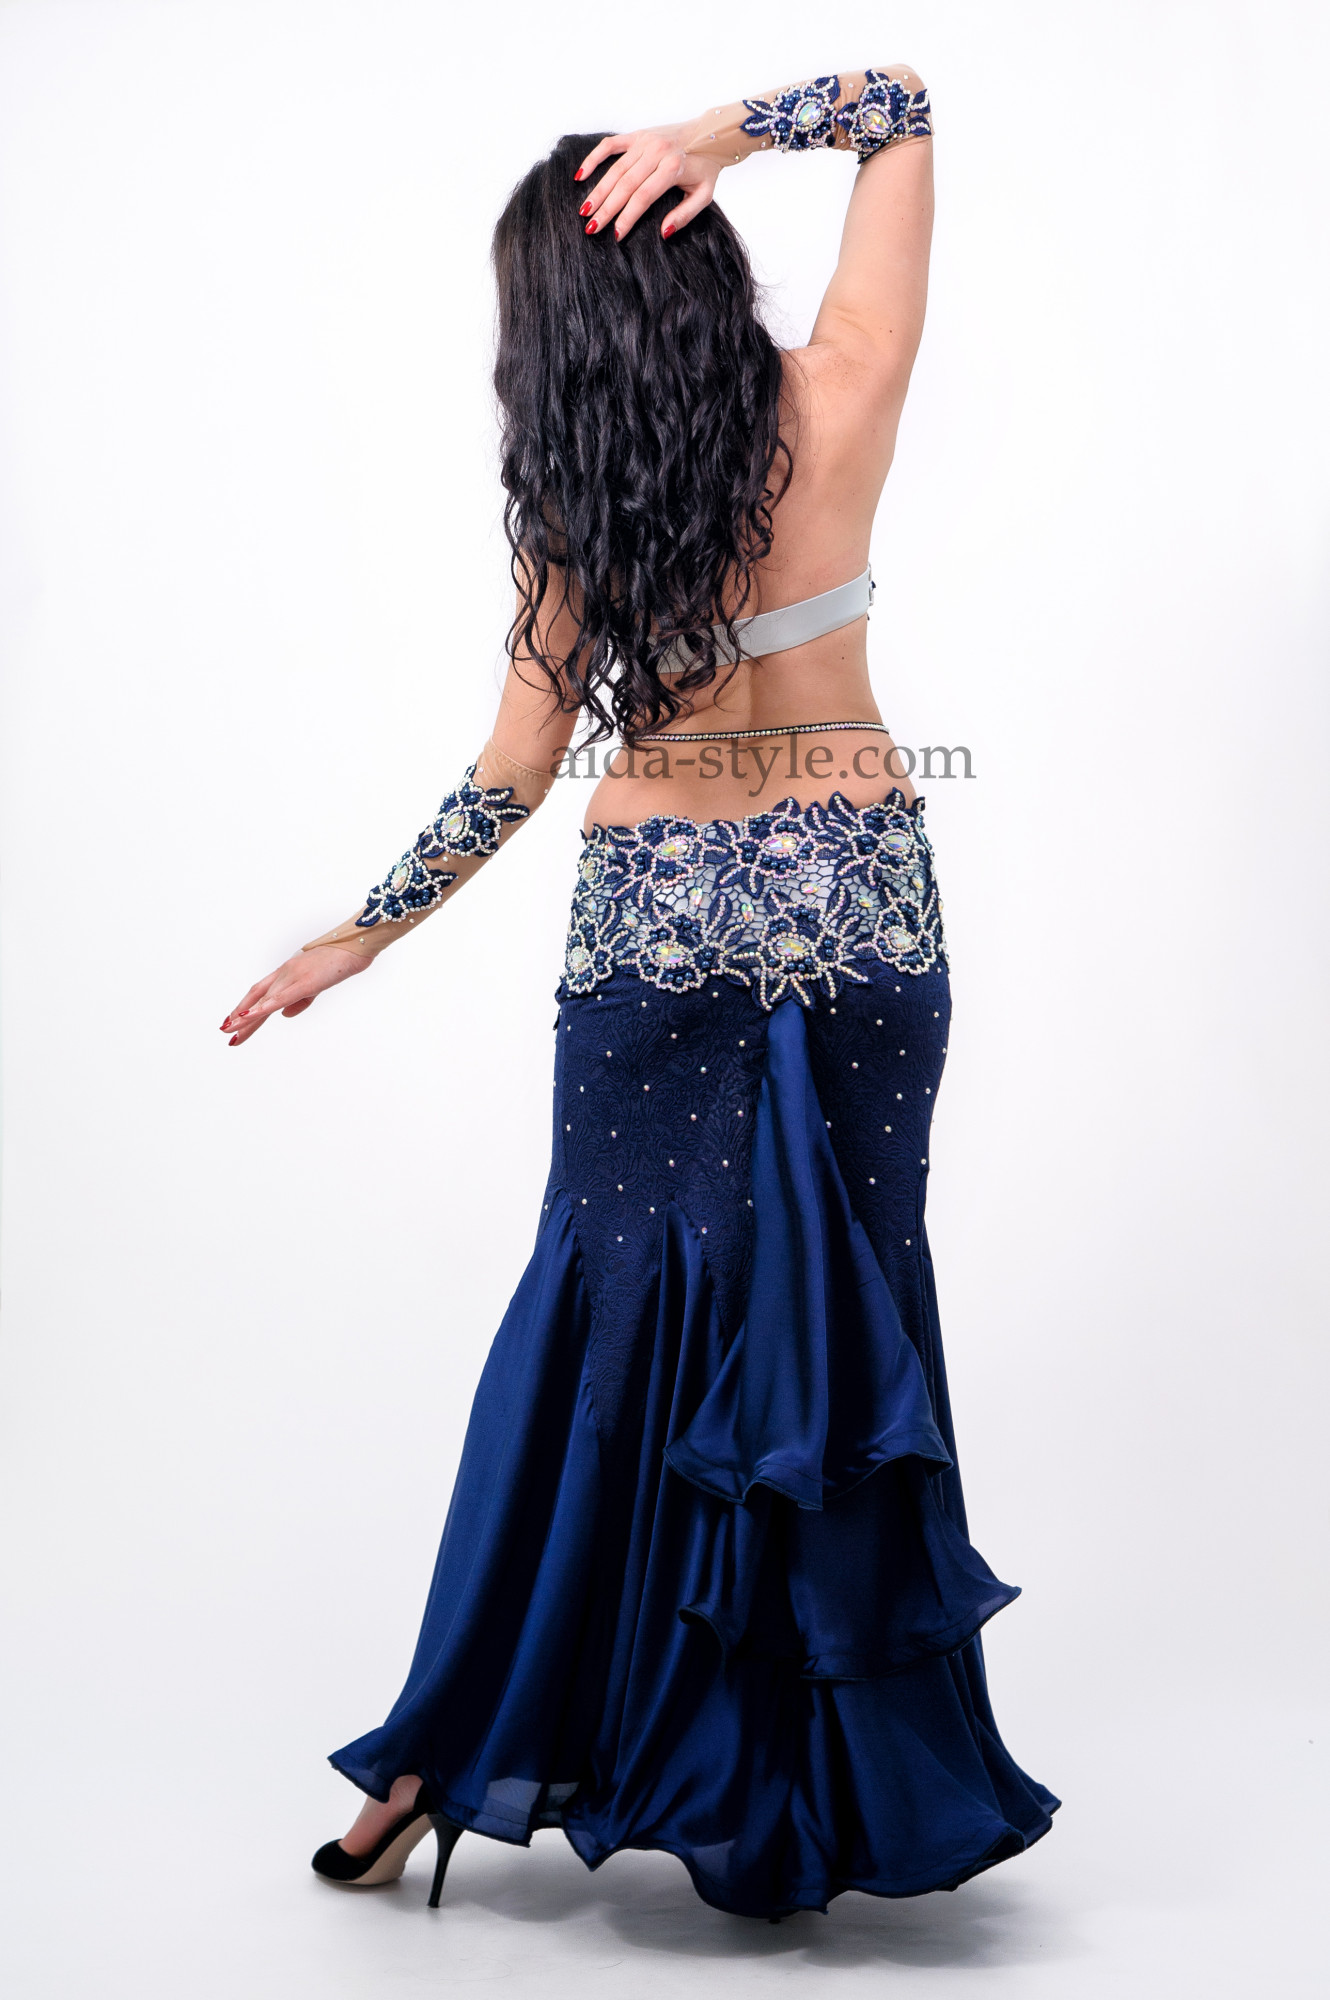 Professional belly dance dress in dark blue color. Comes with accessories for both hands. Bra and belt zone are richly decorated with flower patterns and stones